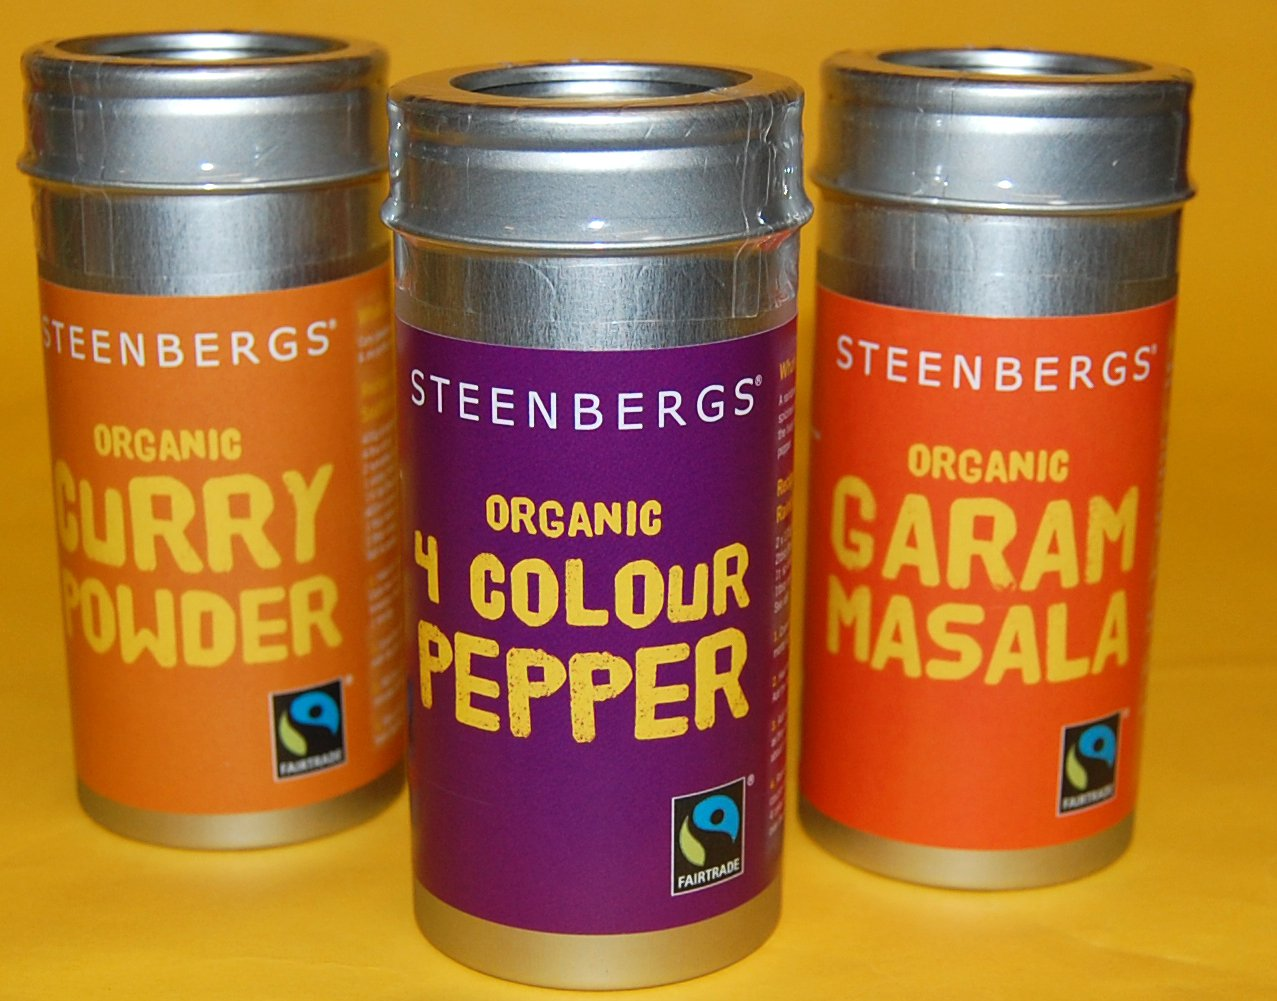 Steenbergs new spice tins